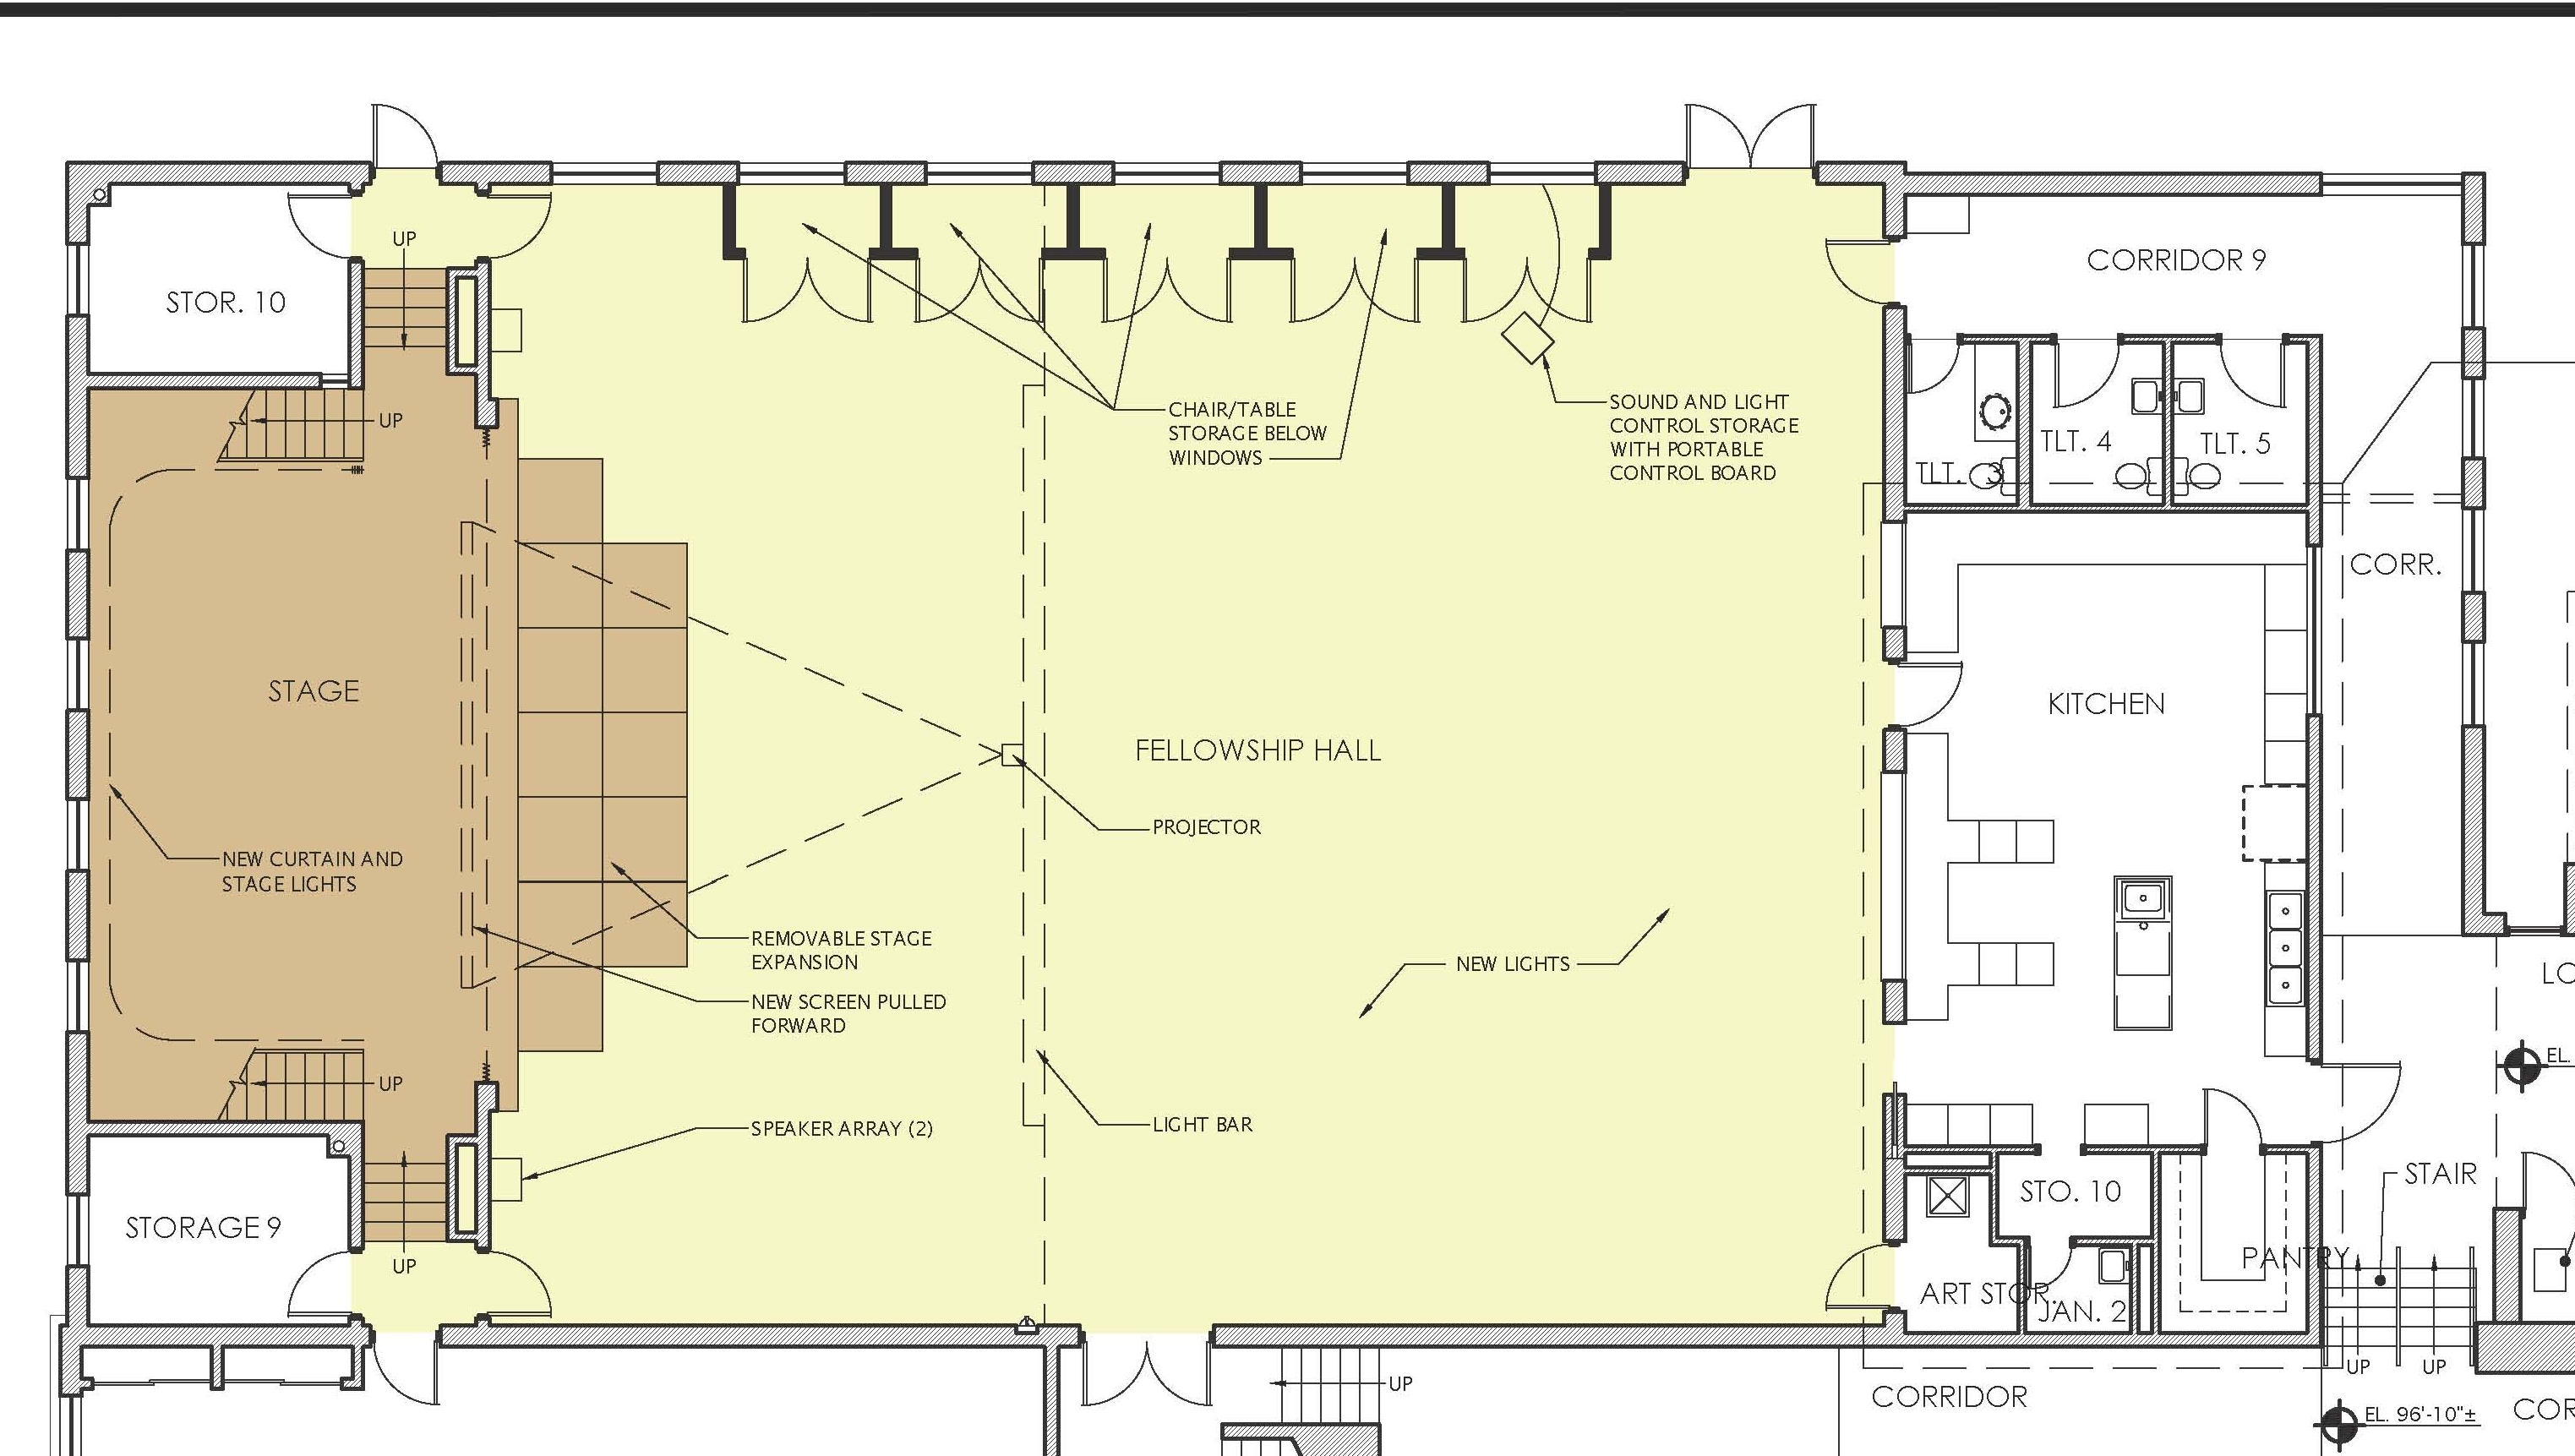 Proposed Changes To Fellowship Hall